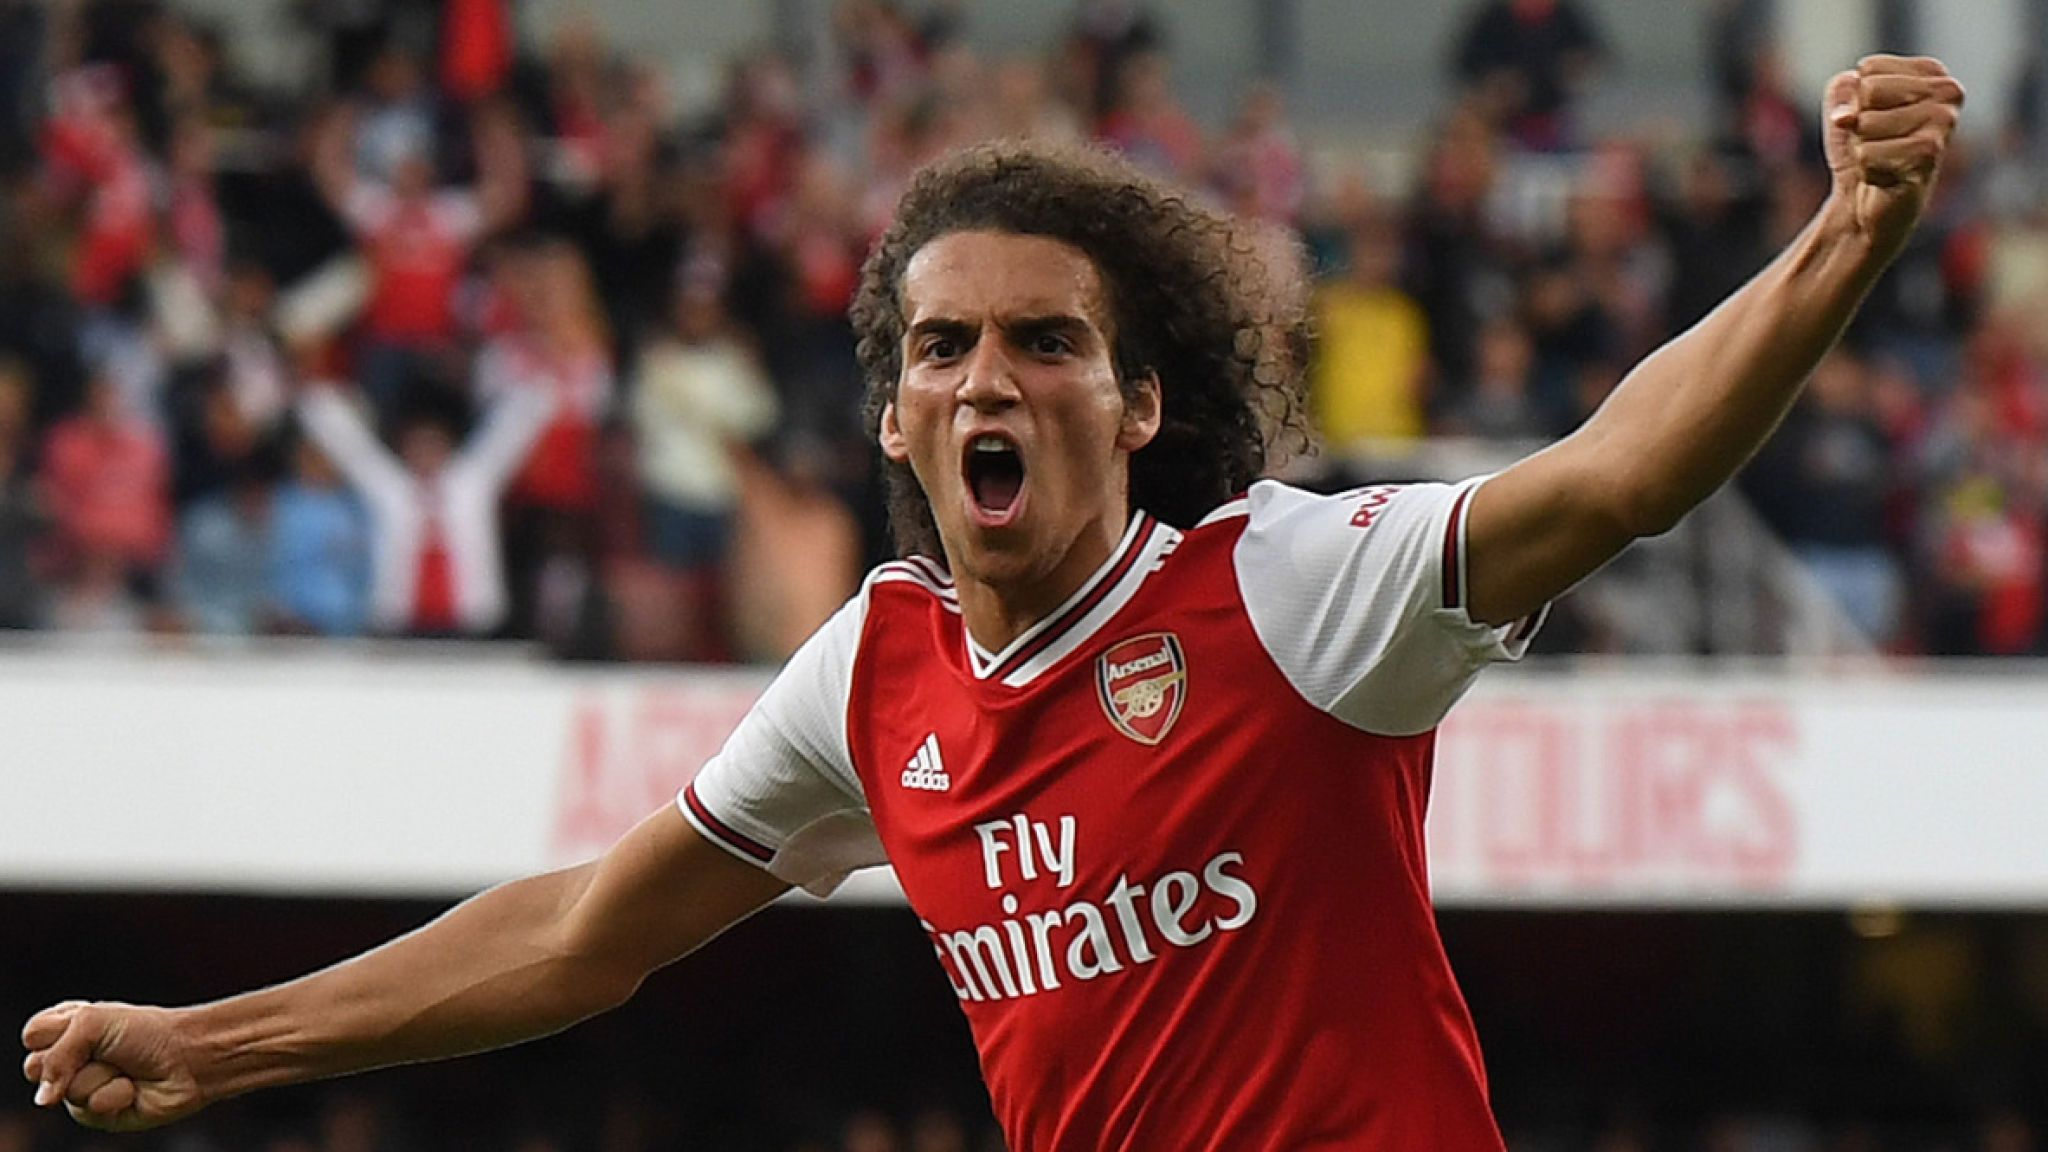 'Bowing down to the new king' - Arsenal fans notice what Olivier Giroud did to Matteo Guendouzi - Bóng Đá